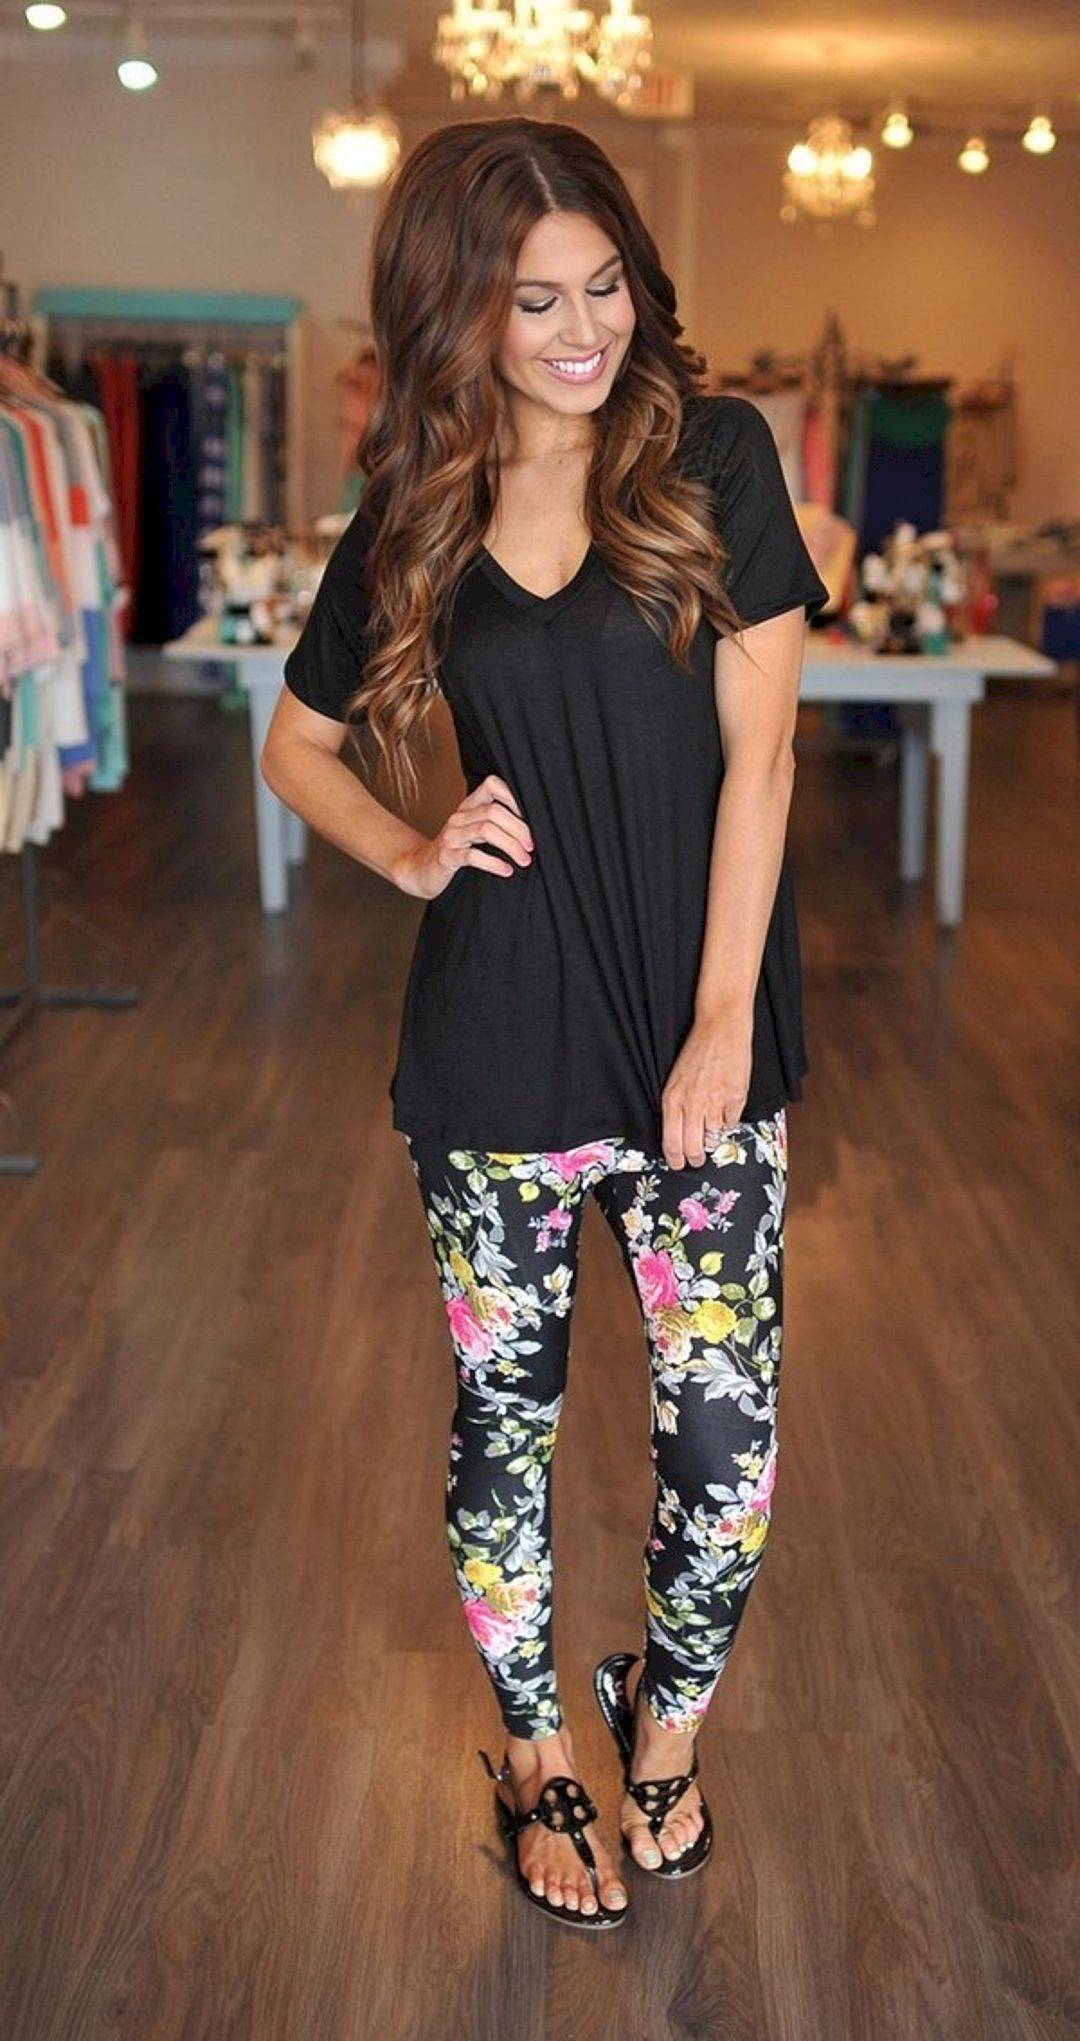 Leggings Patterned outfit ideas new photo